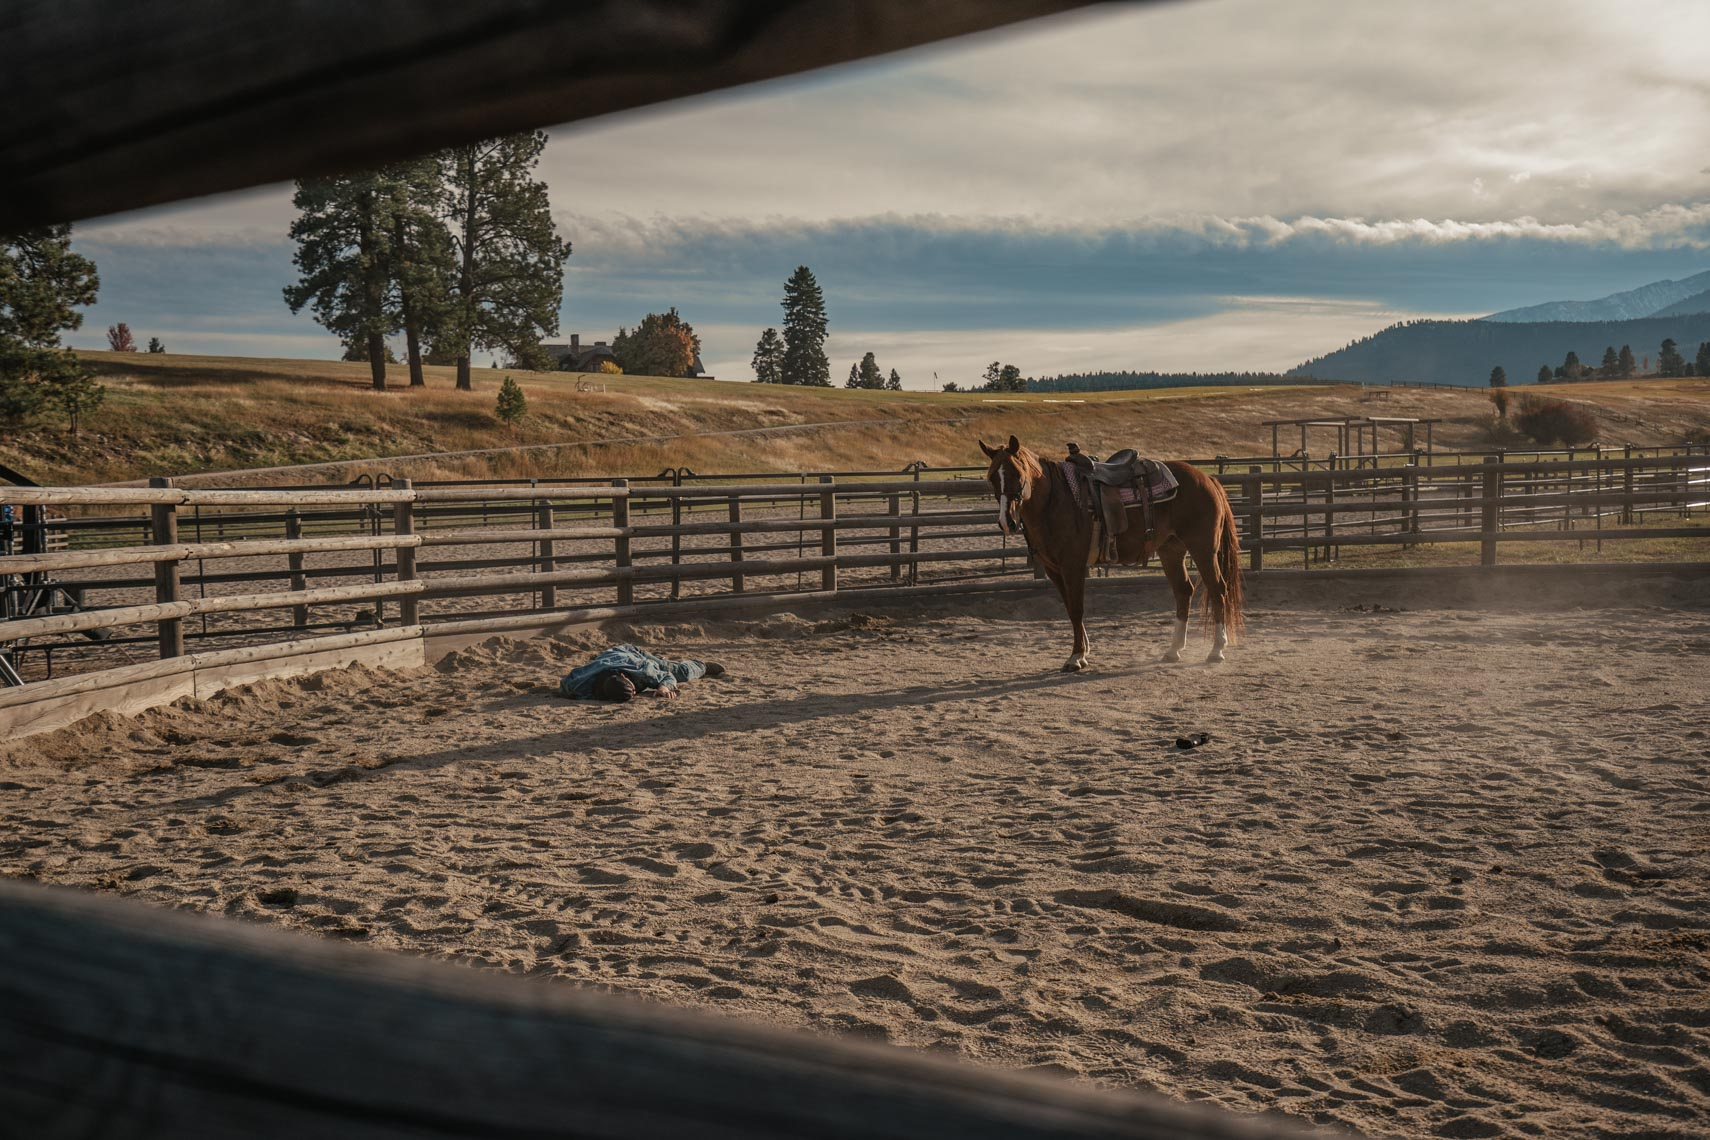 20191016_Yellowstone_EP310_CamMcLeod_0230